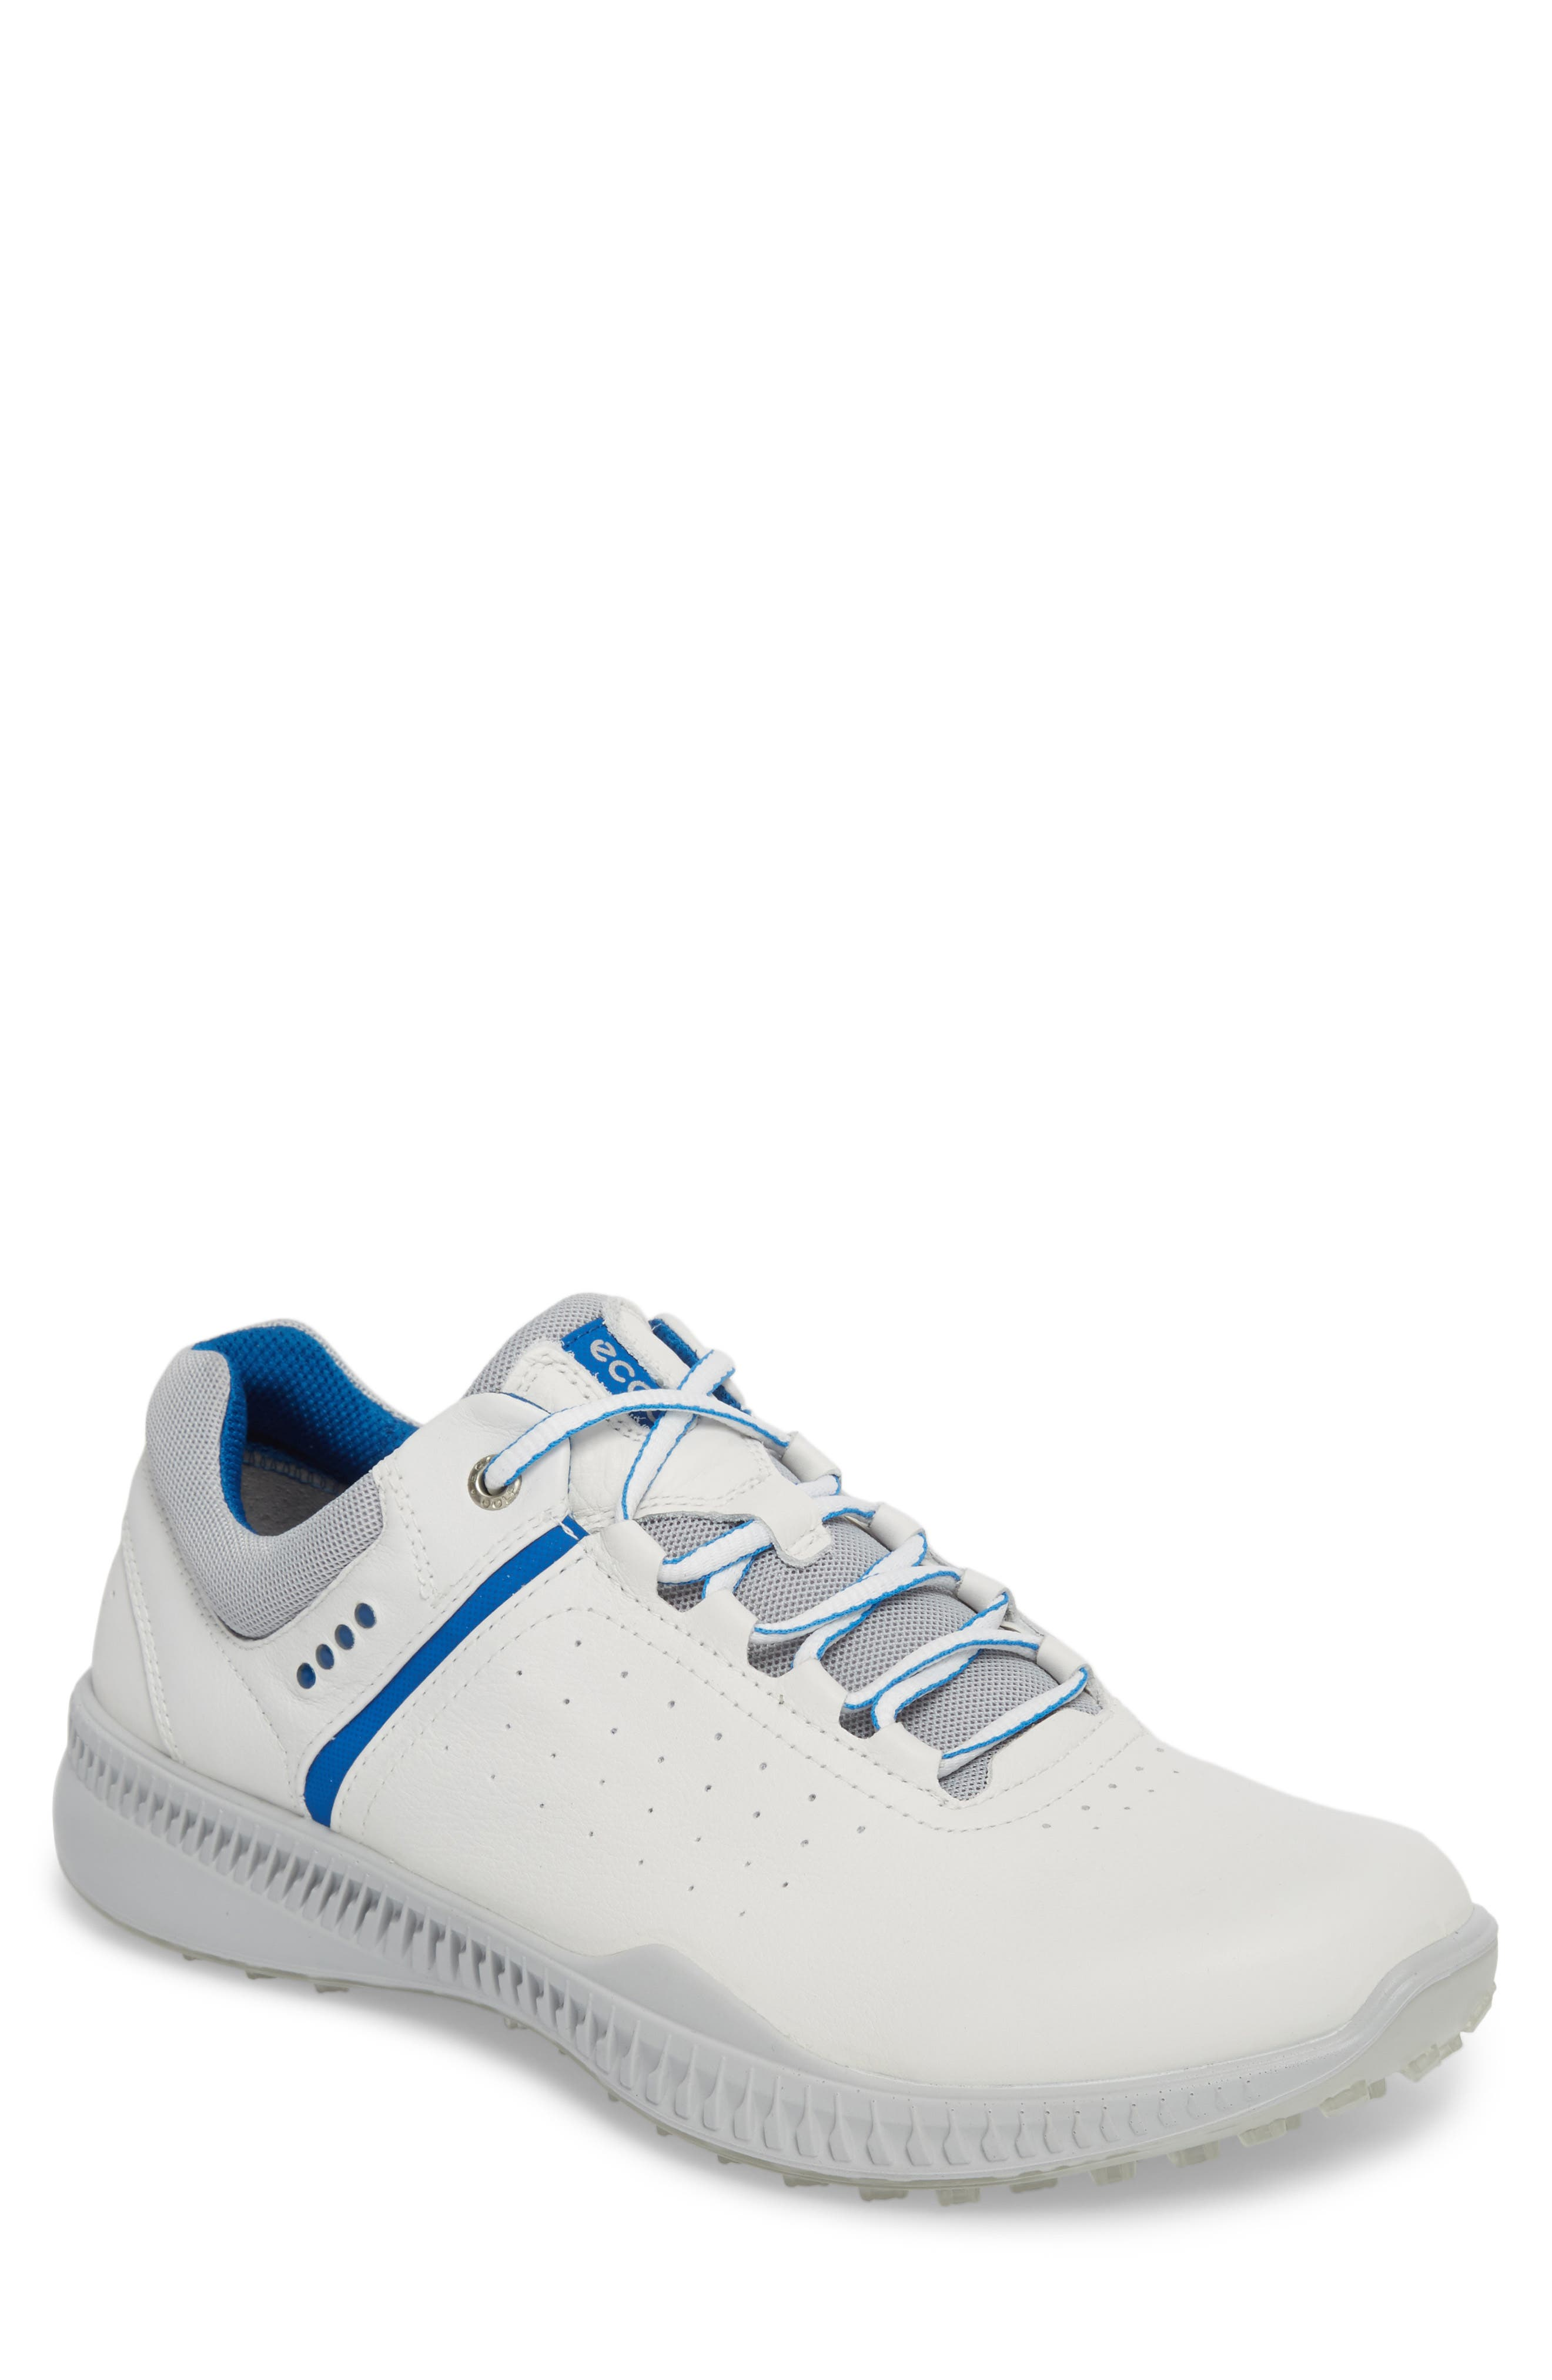 S-Drive Water Repellent Golf Shoe,                             Main thumbnail 1, color,                             White Leather